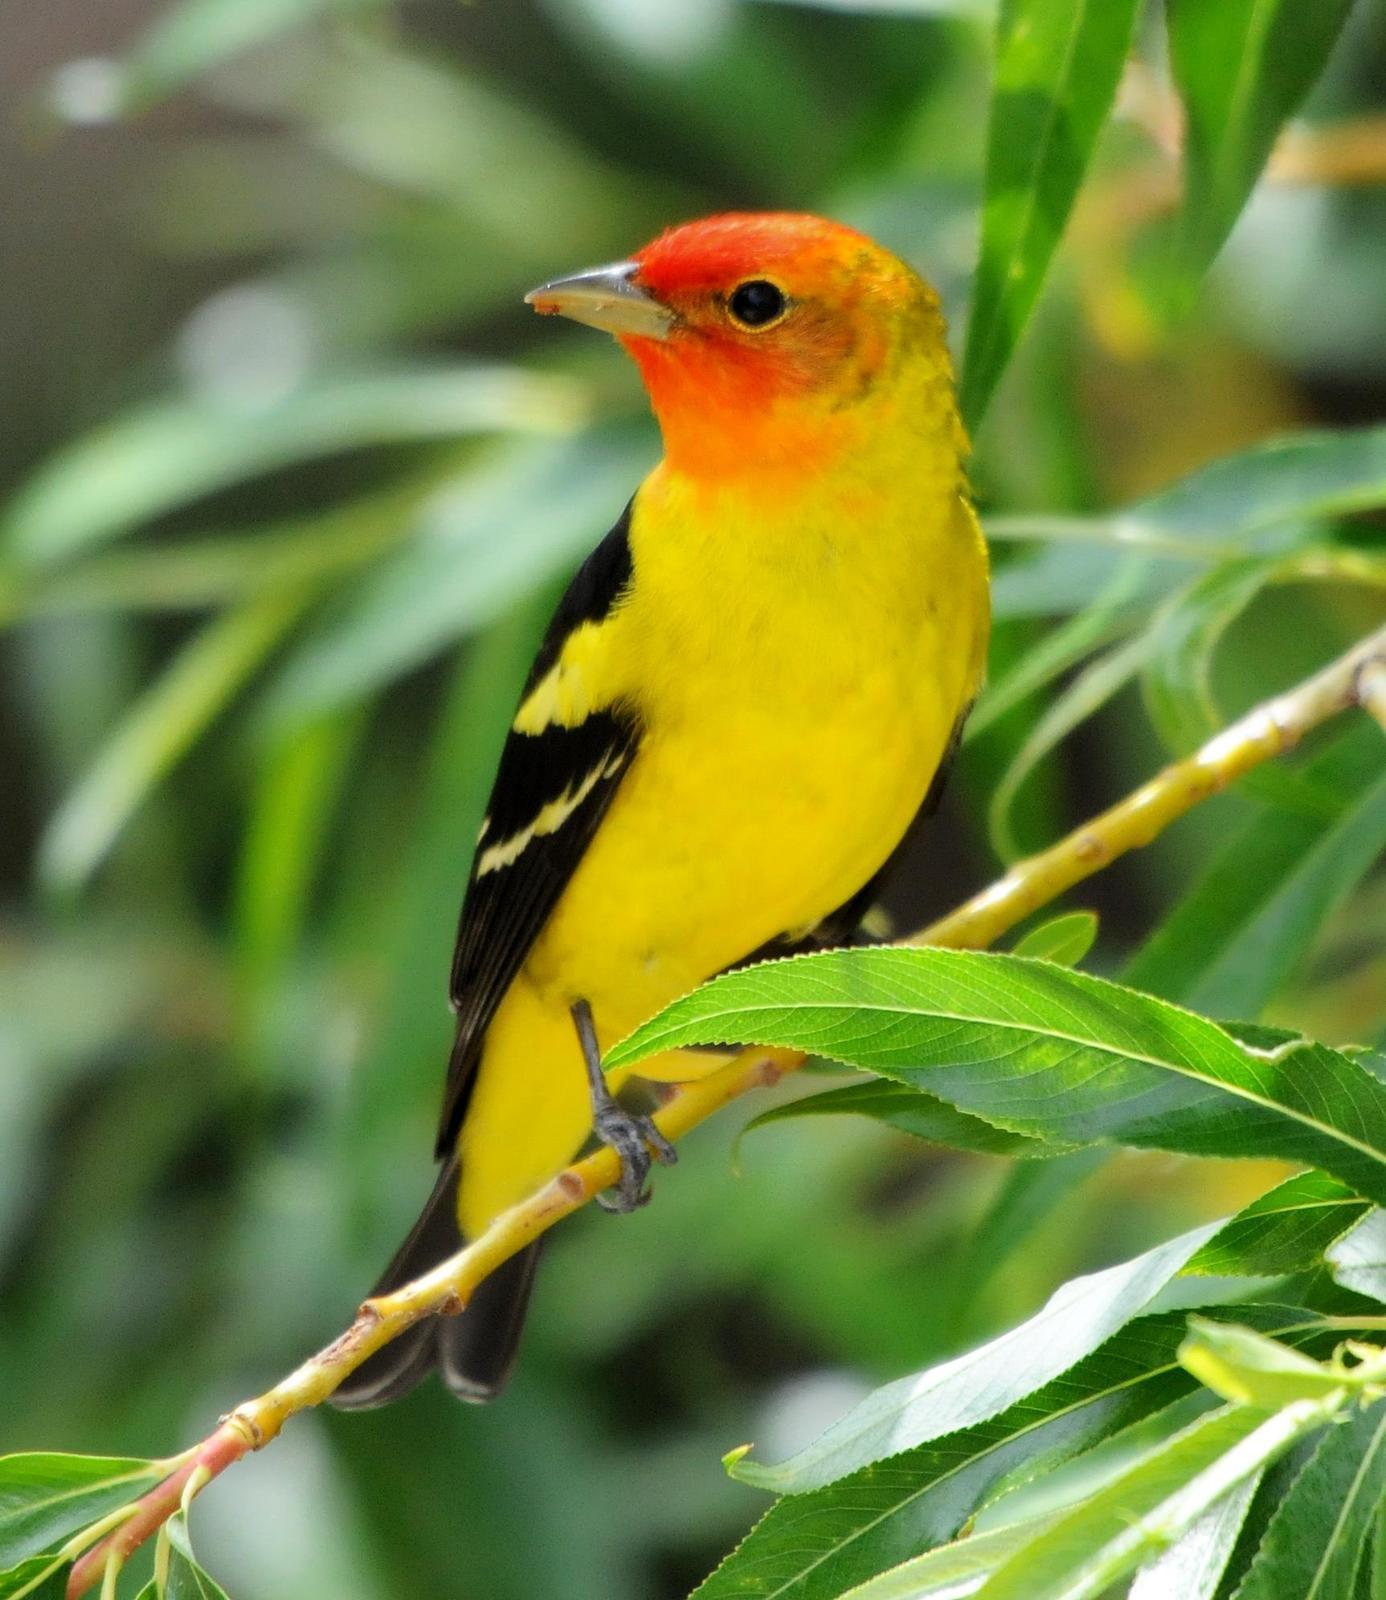 Western Tanager Photo by Steven Mlodinow